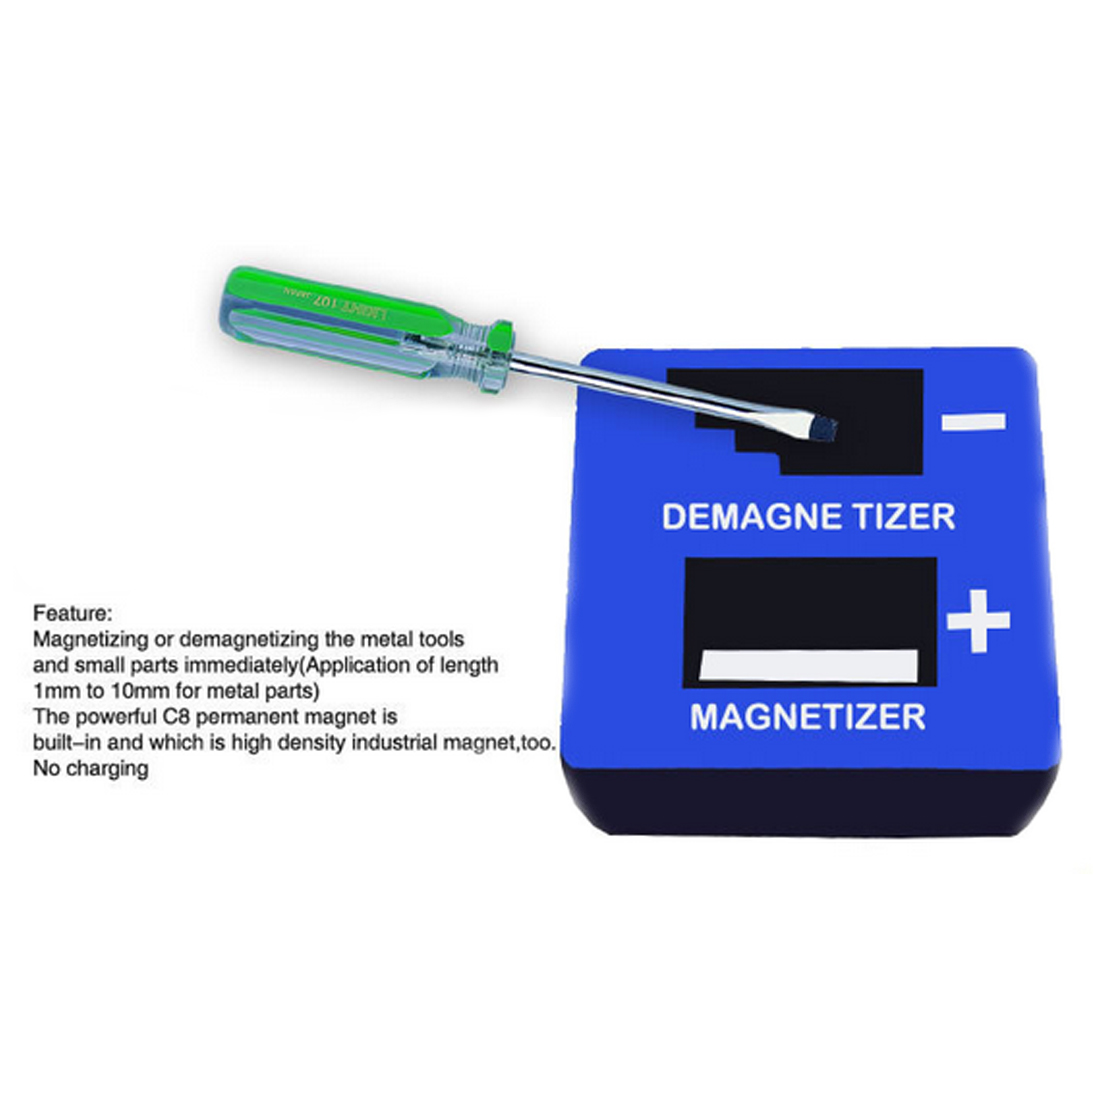 1 Piece New High Quality Magnetizer Demagnetizer Tool Blue Screwdriver Magnetic Pick Up Tool Screwdriver